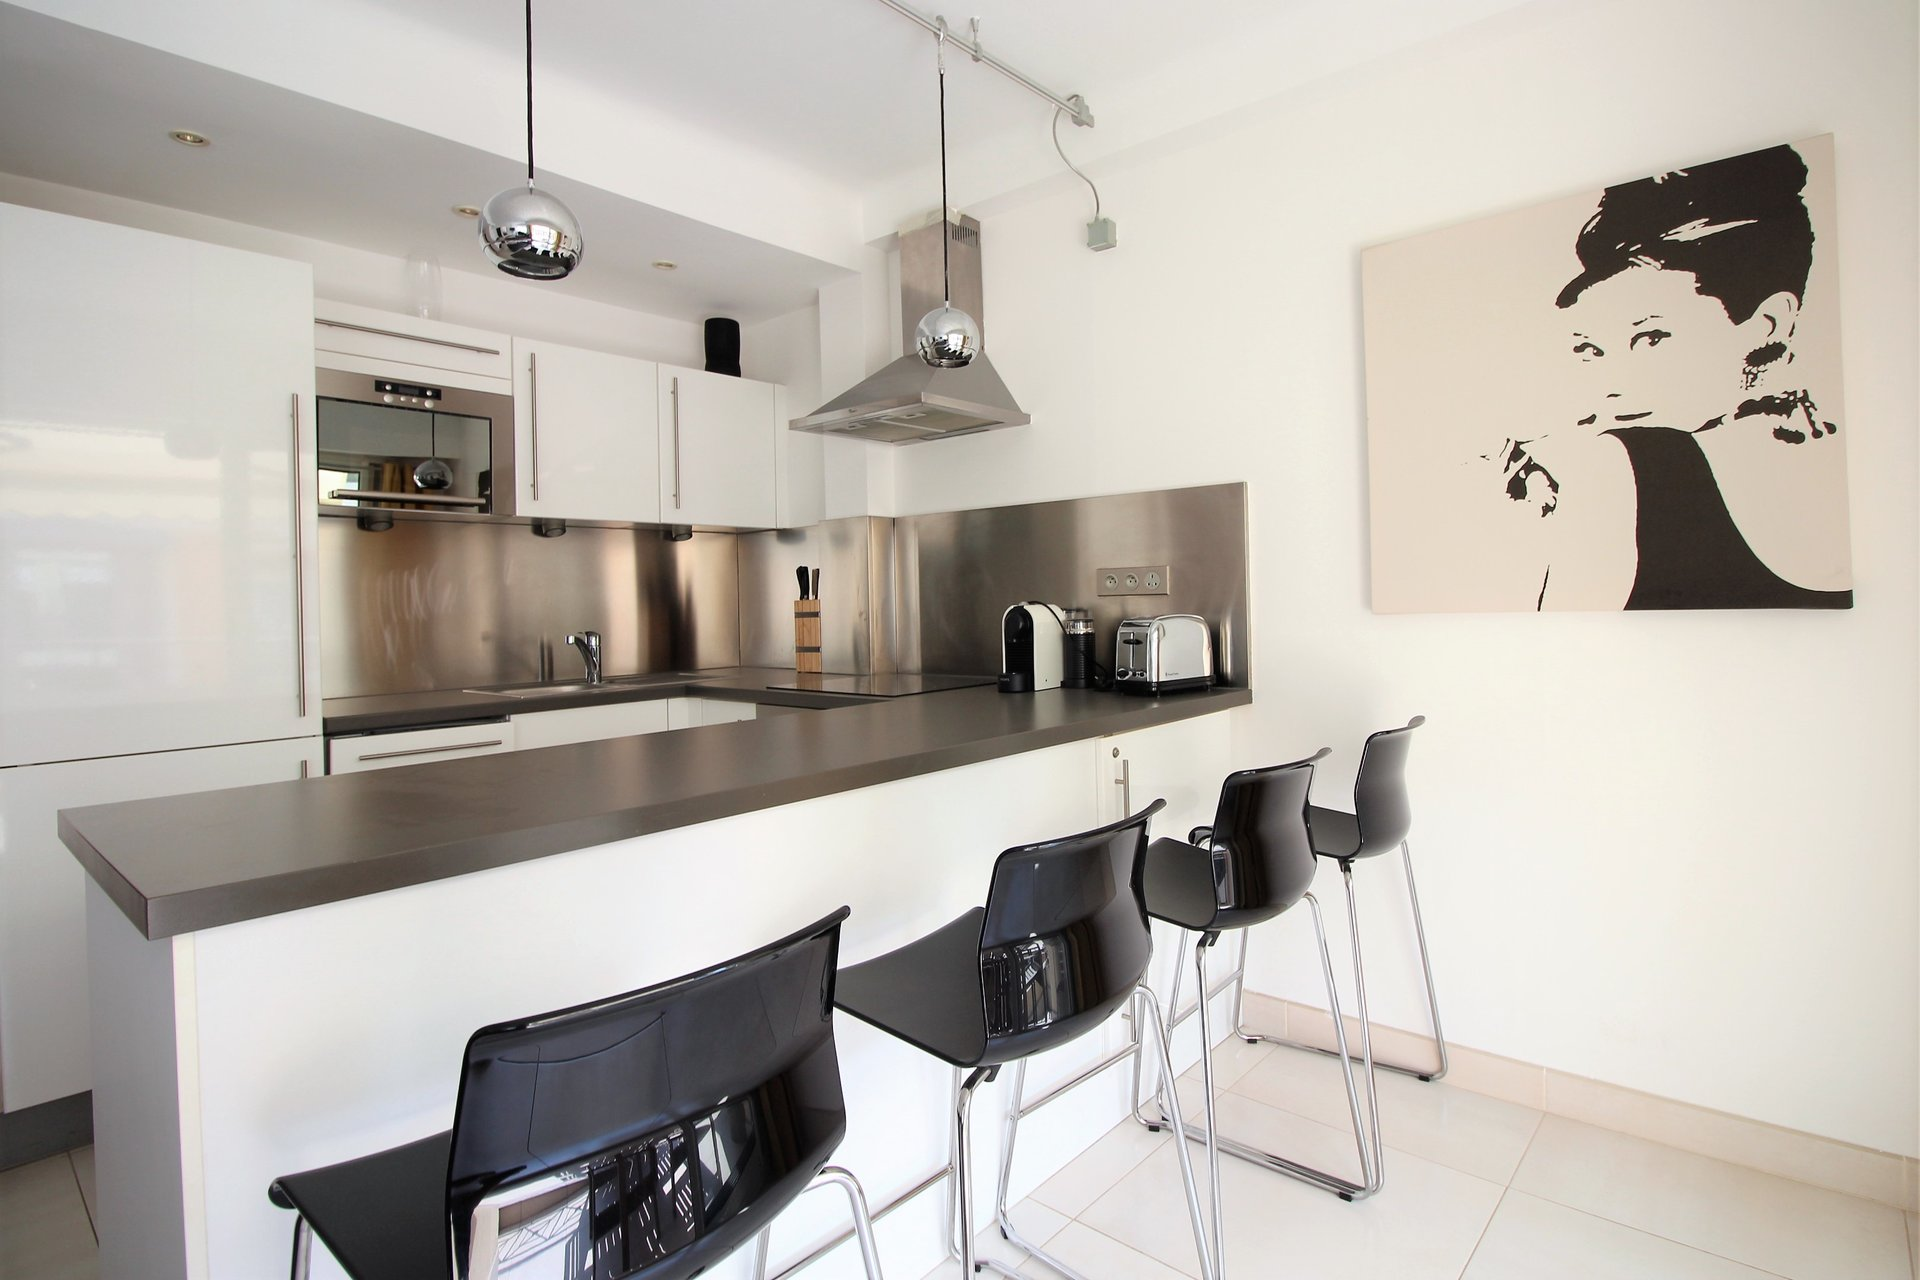 FANTASTIC LOCATION FOR THIS 2 BEDROOMS FLAT!